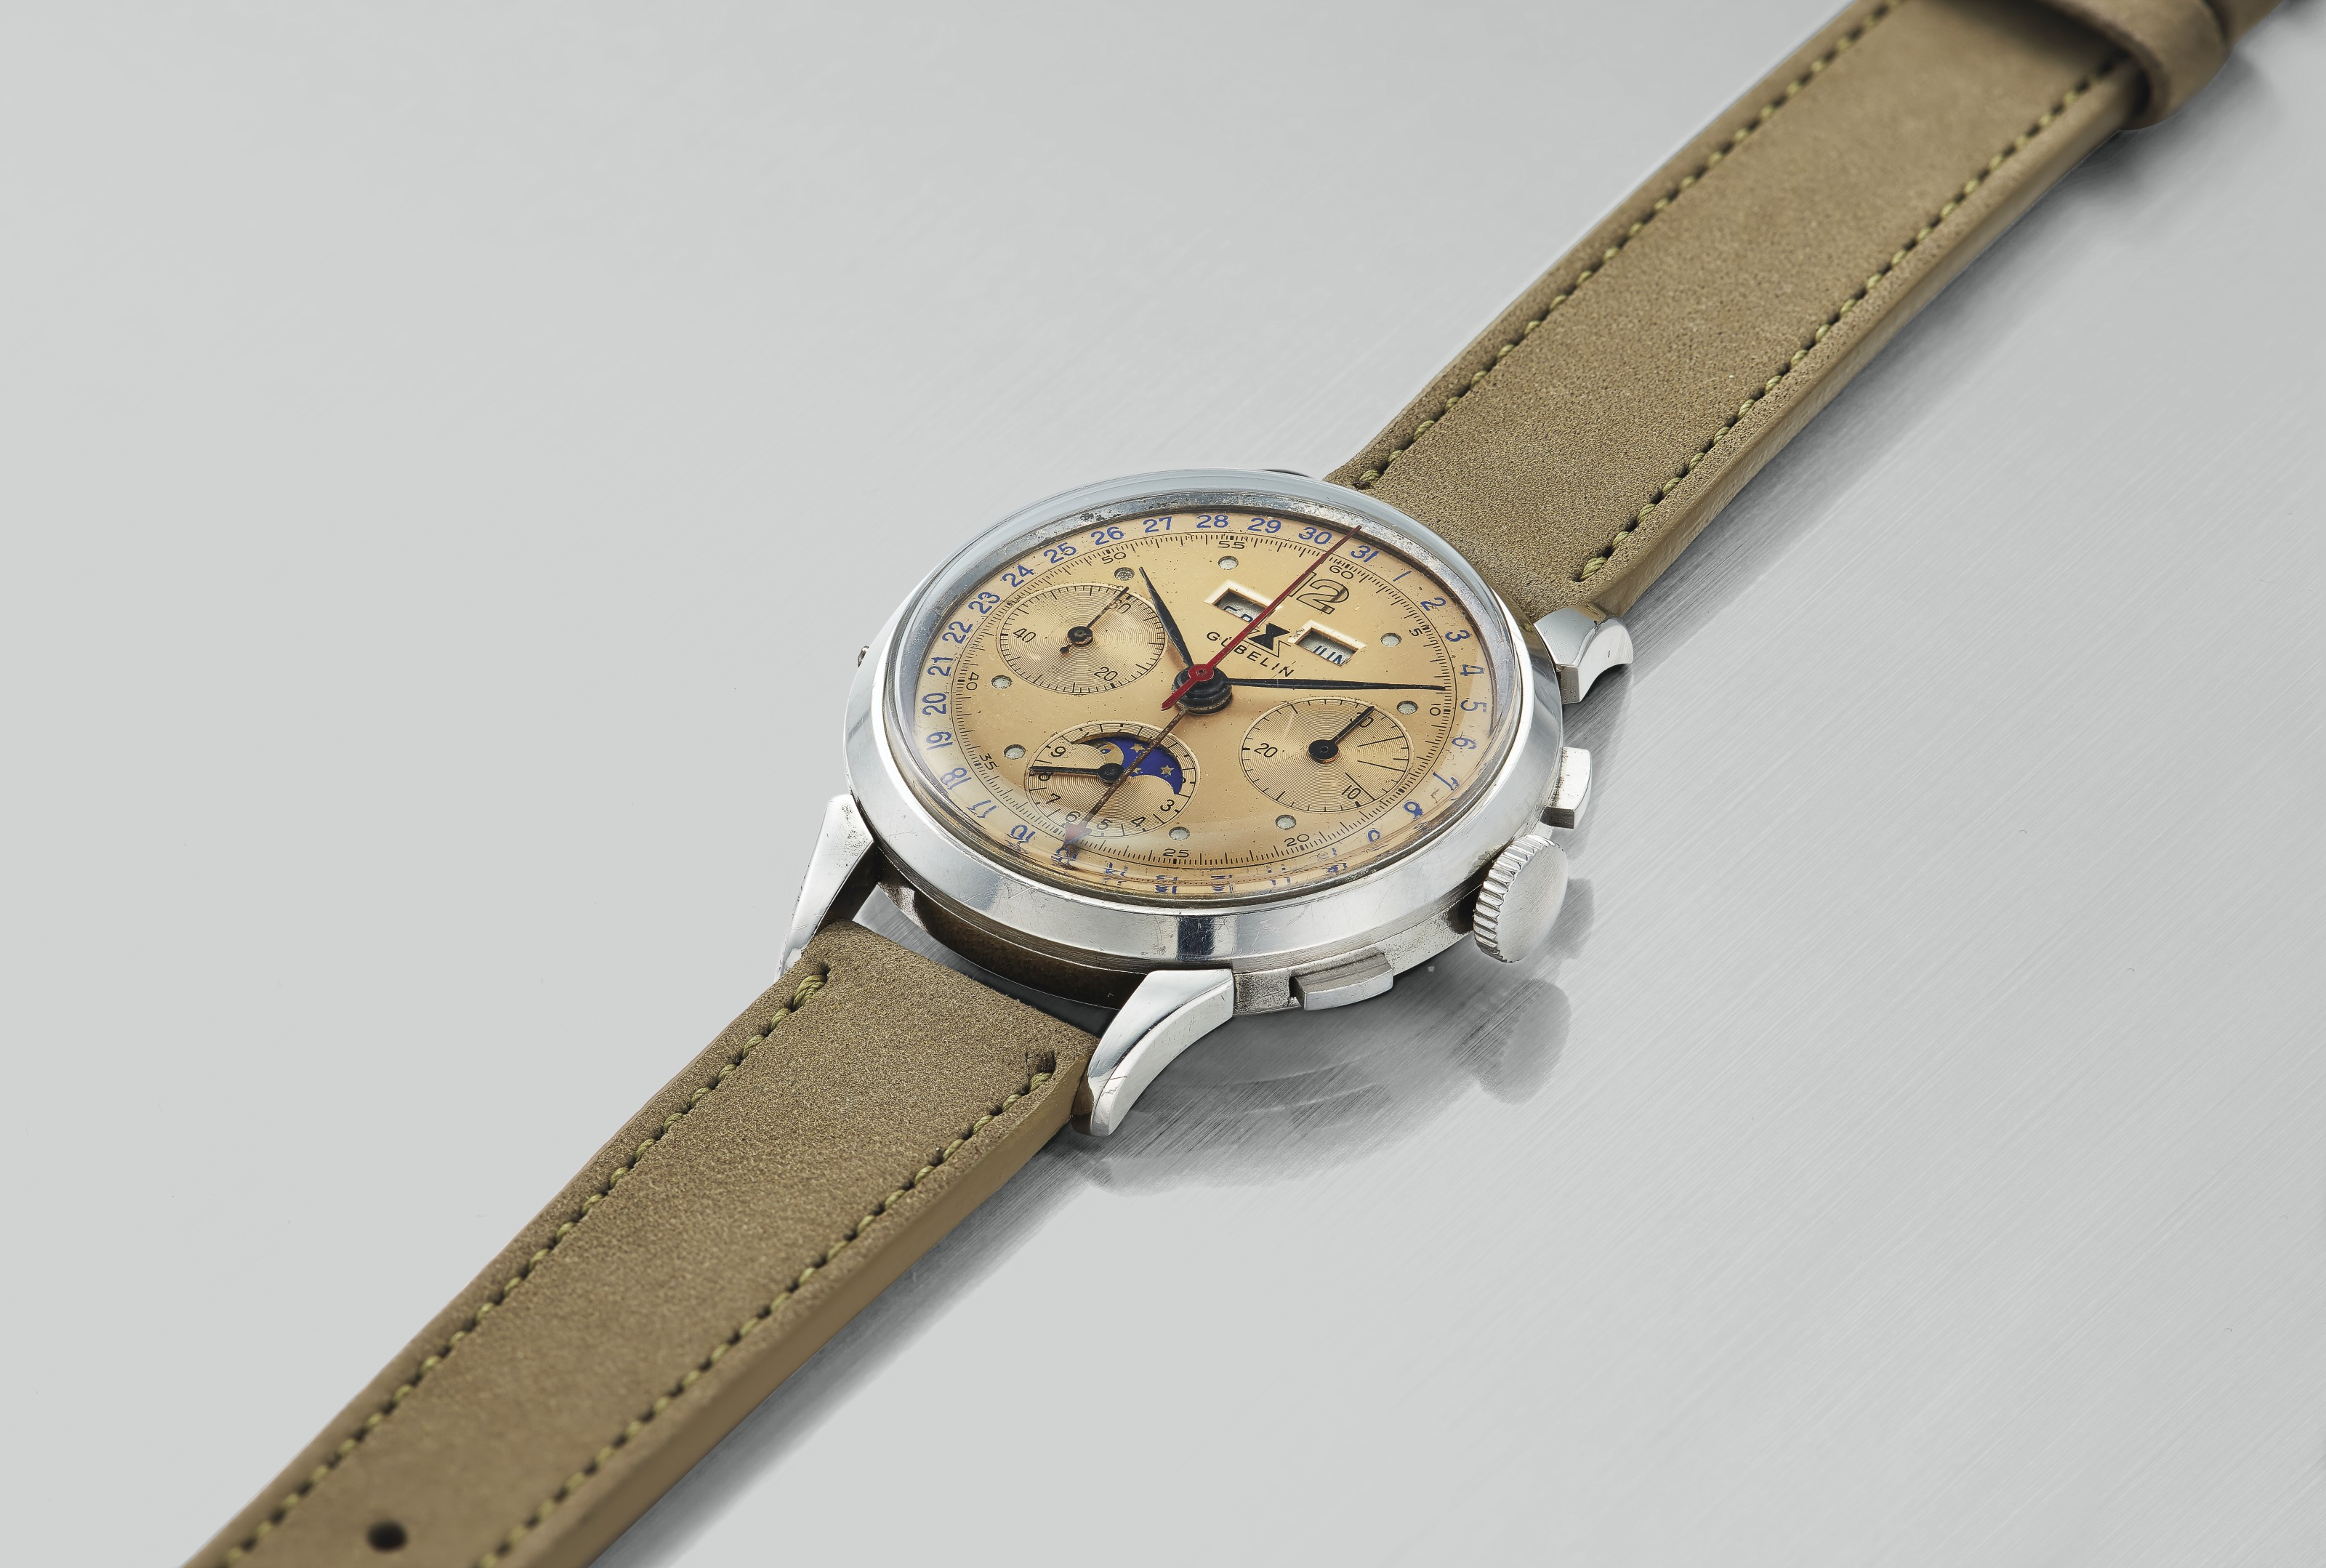 Gubelin. A Very Fine and Rare Triple Calendar Chronograph Wristwatch with Moonphases